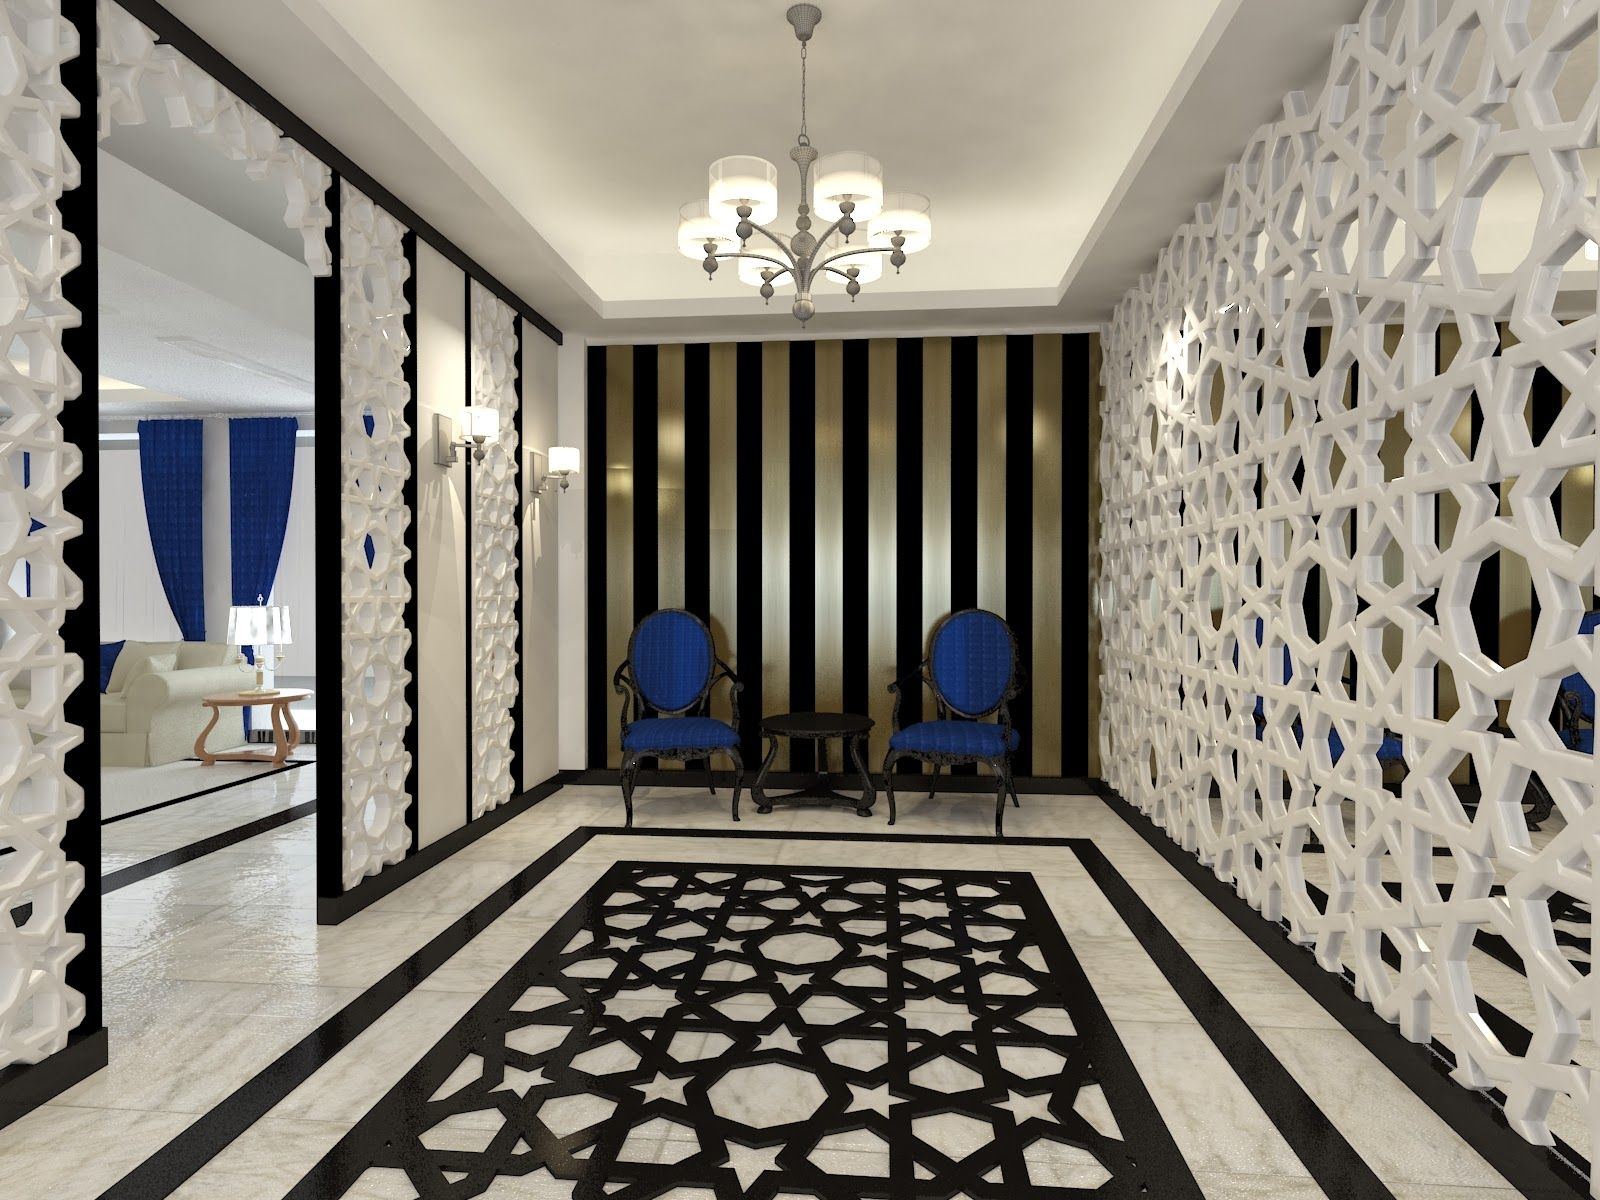 Islamic modern interior design google search banks for Indoor design modern